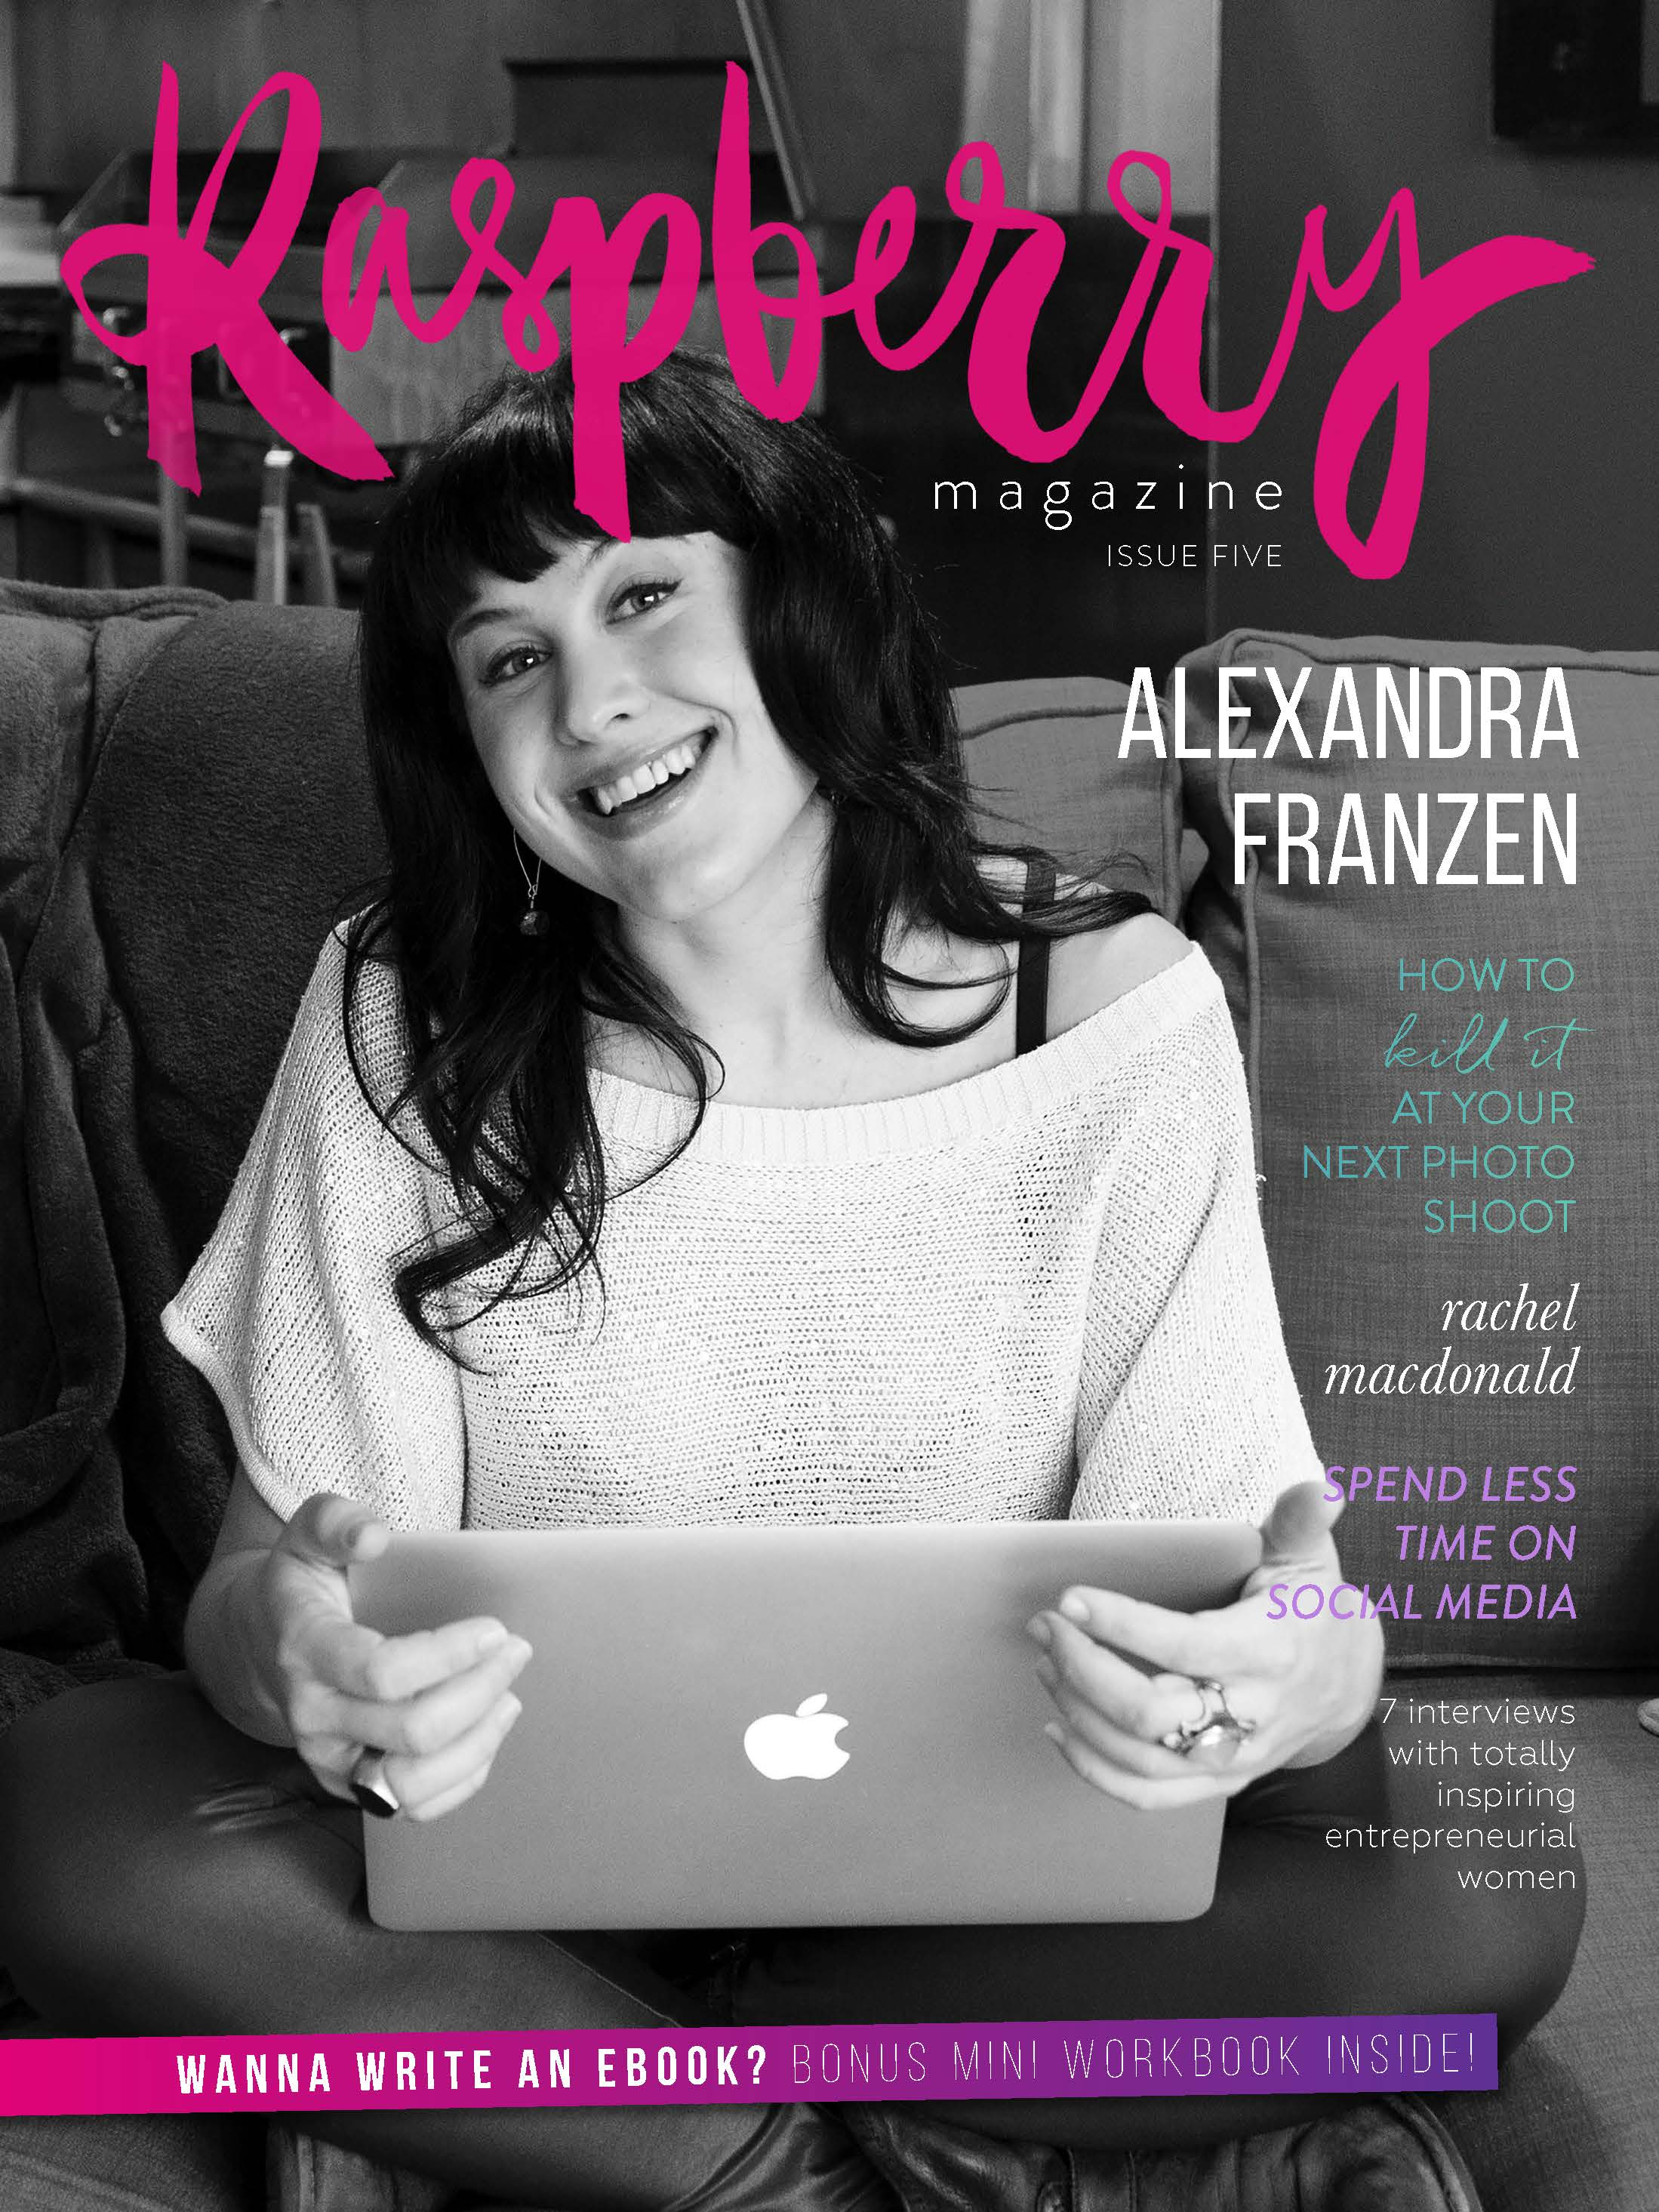 ISSUE FIVE ( download here )   COVER STORY // An interview with communications agency creatrix and blogger Alexandra Franzen where we talk all things business, tenacity, and becoming unstoppable.   Oh, Mexico! Kate and Hannah, two Aussie ex-pats with a flair for design, start a gorgeous homewares business from Mexico City.   Five ways to spend less time on social media and more time creating rad art , by Chloe Thea.   How to kill it at your next photo shoot , by Michelle Jakubenko (Eyes of Love).   Wilder and free : an interview with spiritual business maven and owner of The Fifth Element Life, Sarah Wilder.   Top ten ways to start your day:for busy entrepreneurs who want to stay productive , by Kate Crocco.   Live well, travel often, life's good: an interview with Lynn Gilmartin - world poker tour TV presenter, juice bar founder, traveller and budding actress.   Kindred beauty: an interview with Natalie Sellars, the toxin-free beauty expert.   Rachel Macdonald : spirited speaker,author, blogger and creator of the Bright-Eyed and Blog-Hearted eCourse.   Your core light : an interview with ethical jewellery designer, Fabienne Costa.   The Freedom Project: a peek into the story behind this generous movement, by Anna Lozano.   How to care for yourself as an introverted business owner , by Kathryn Hall.   What is an eBook, and how can it help my business? By Alana Wimmer (that's me!)   PLUS a bonus mini workbook to help you nut out your ideal eBook idea!